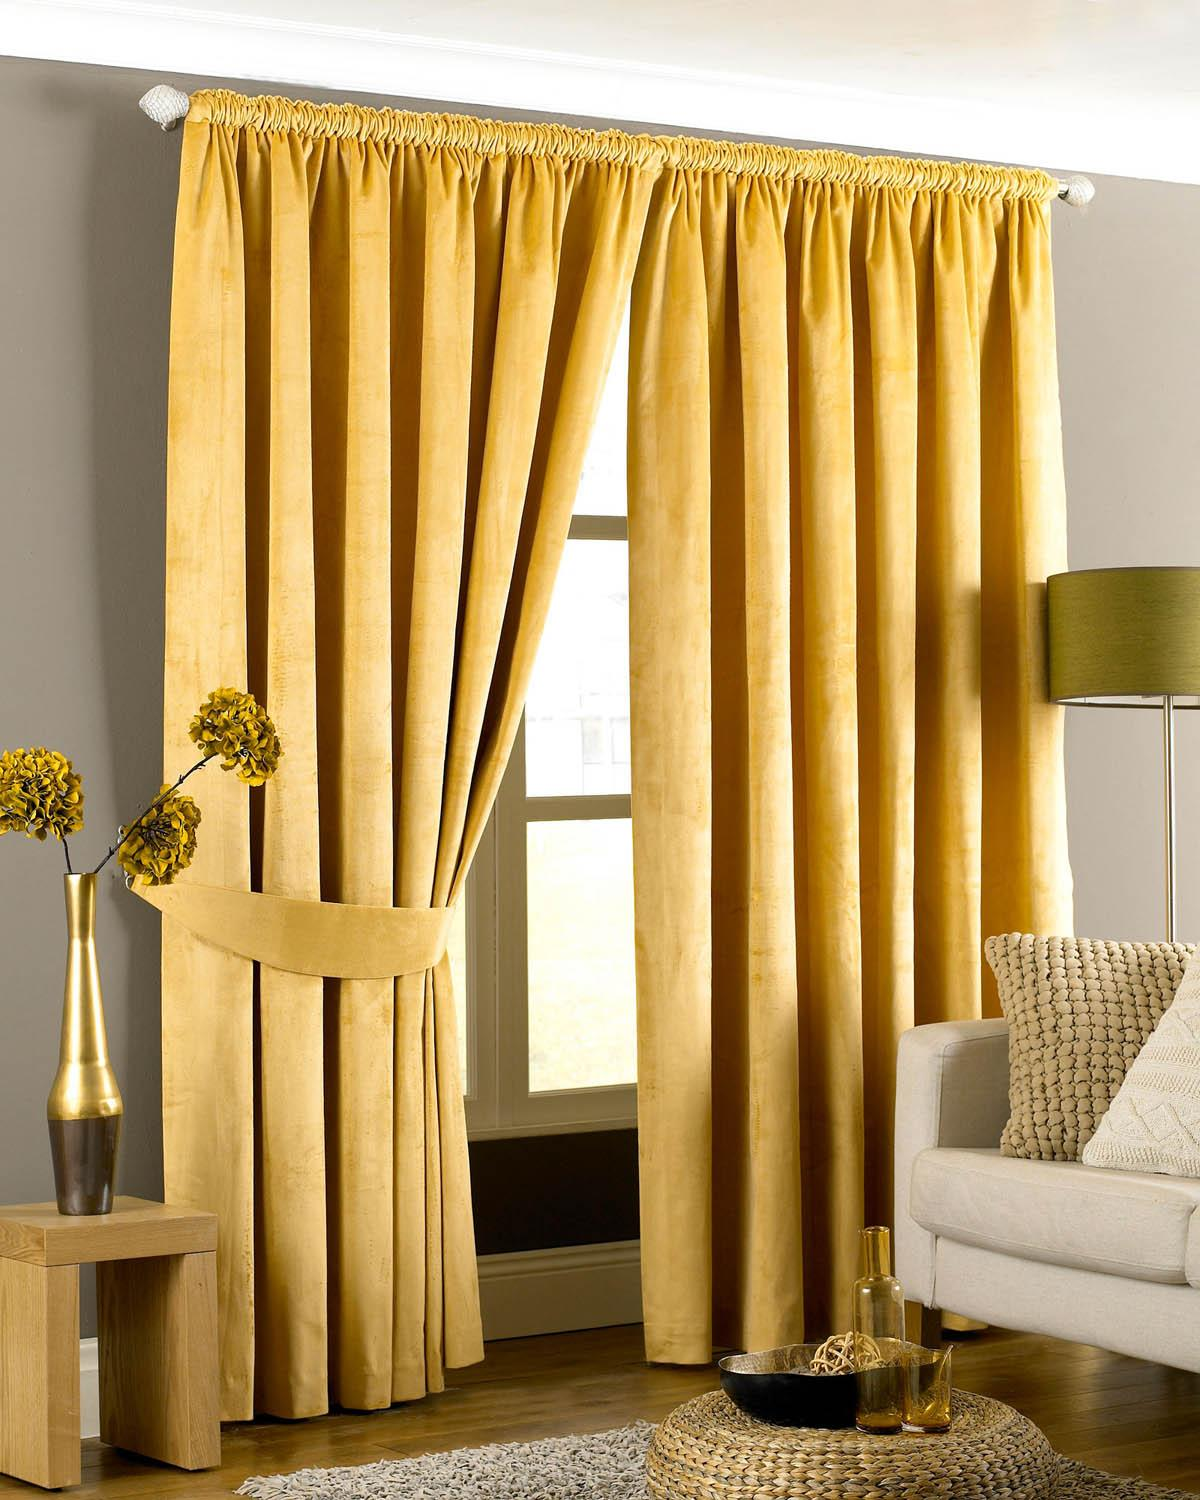 Emperor Ready Made Lined Curtains Gold Free UK Delivery